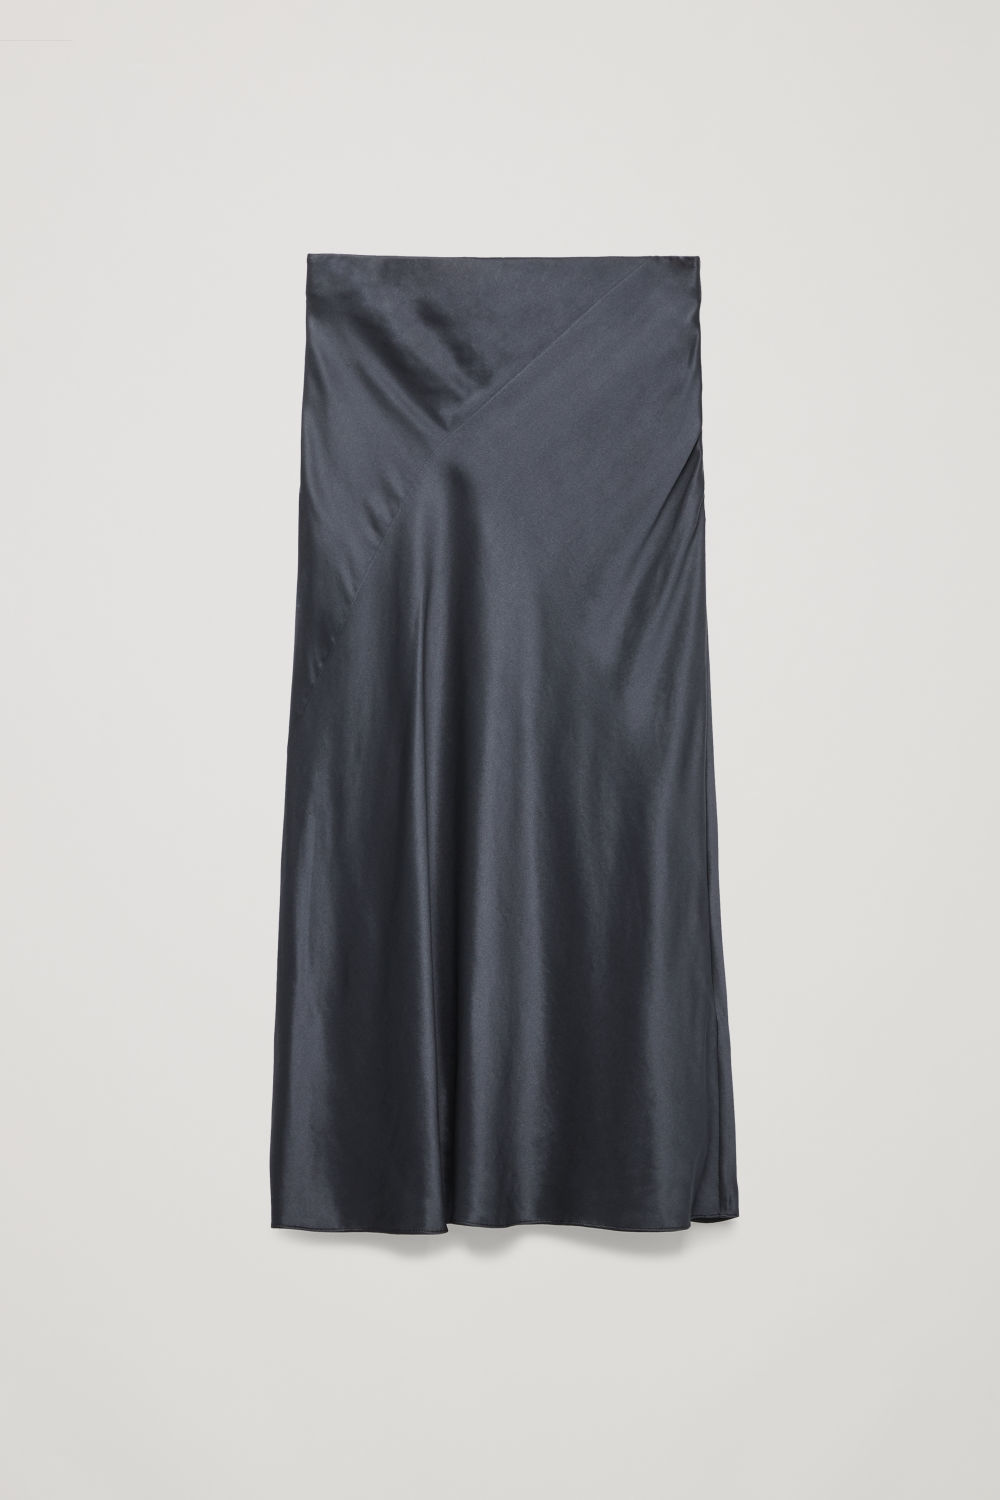 BIAS-CUT SILK MID-LENGTH SKIRT